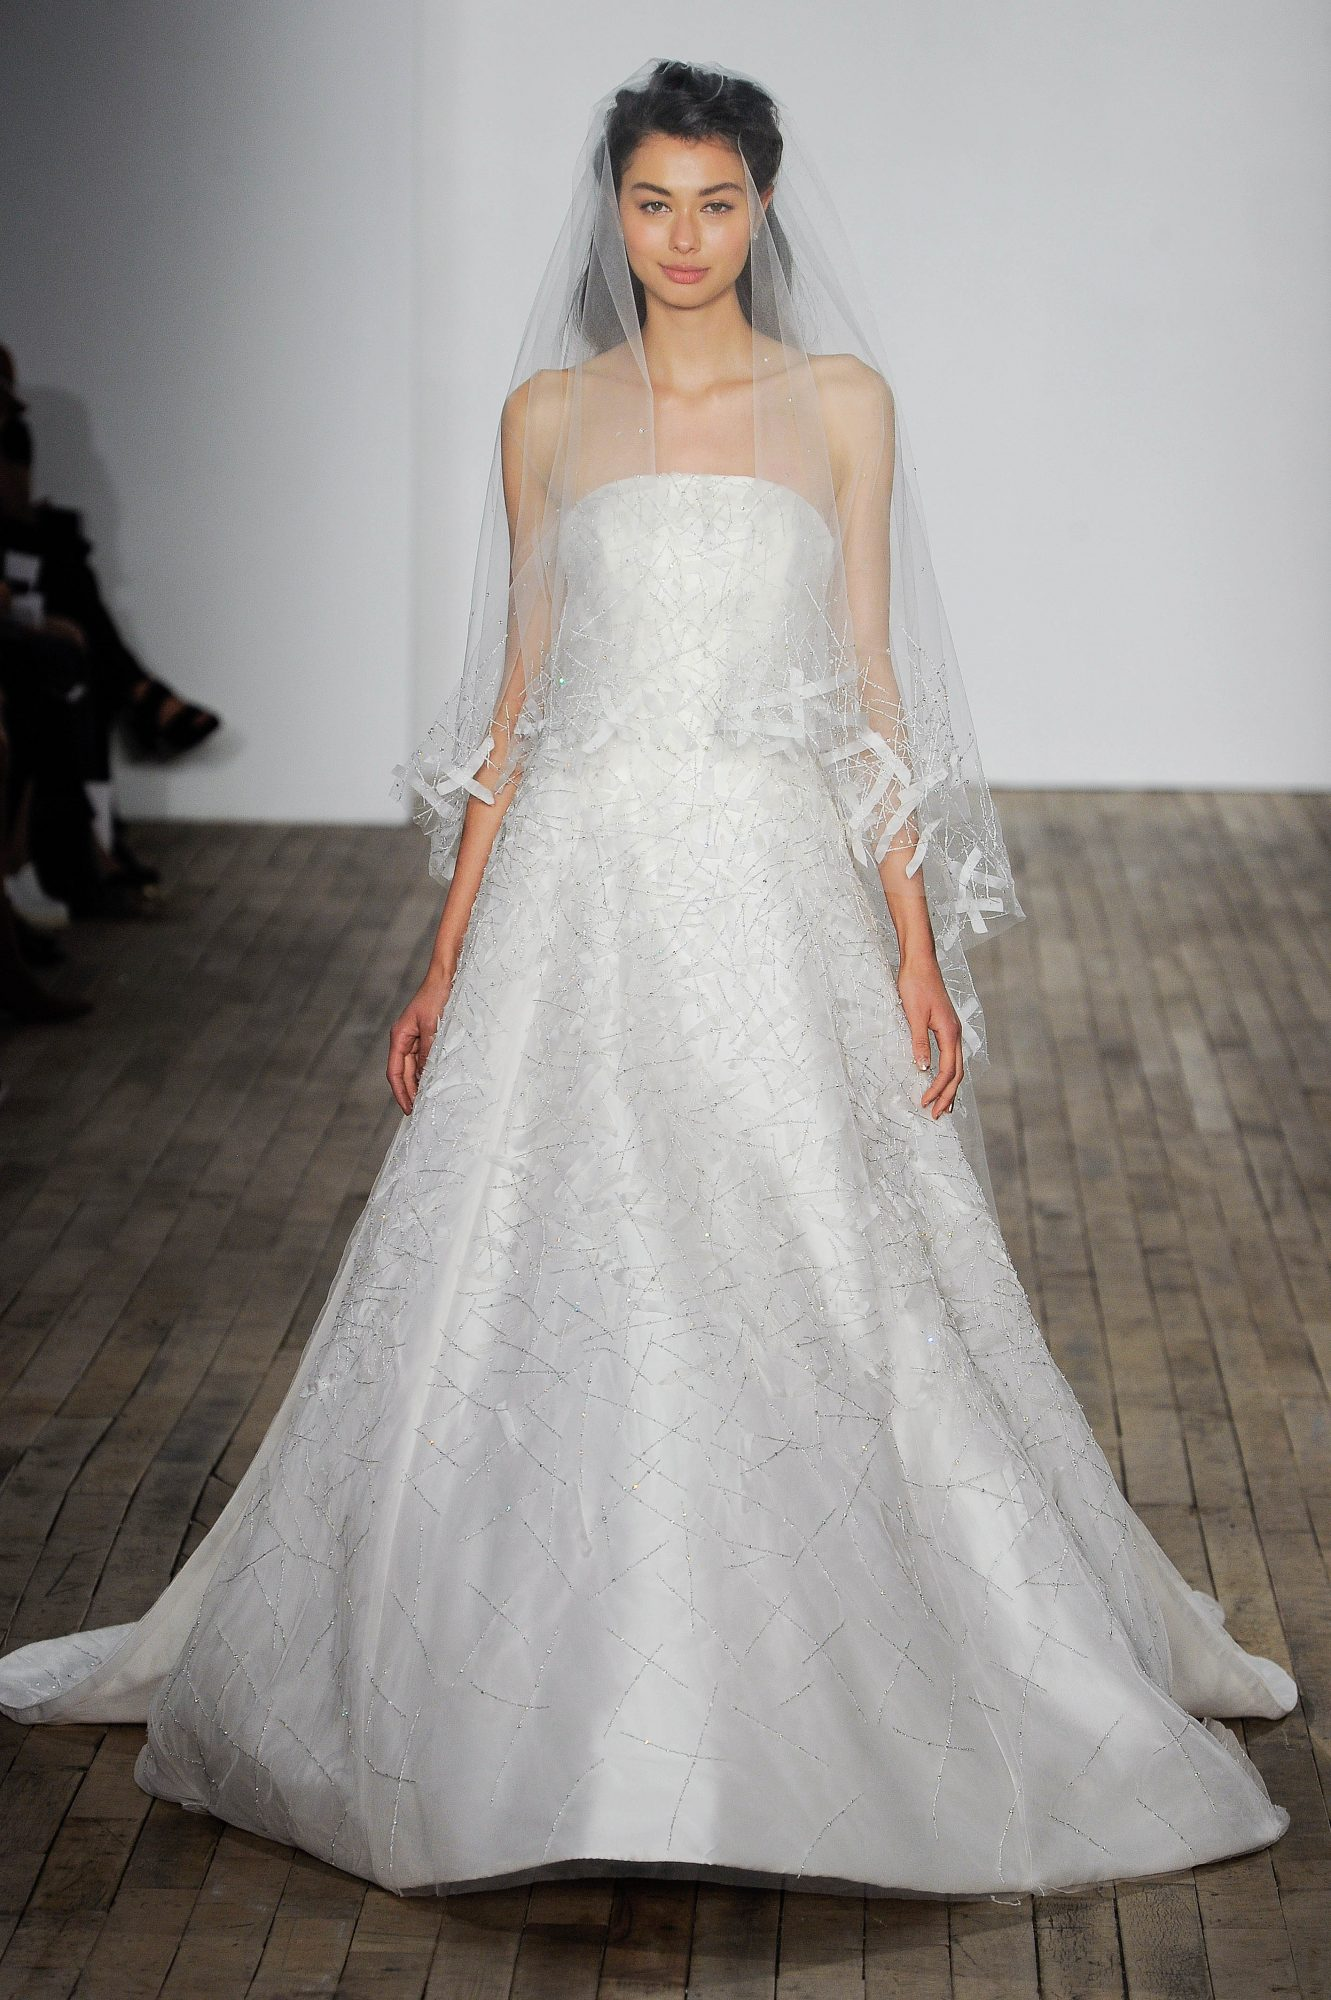 Allison Webb Off-the-Shoulder with Veil Wedding Dress Fall 2018